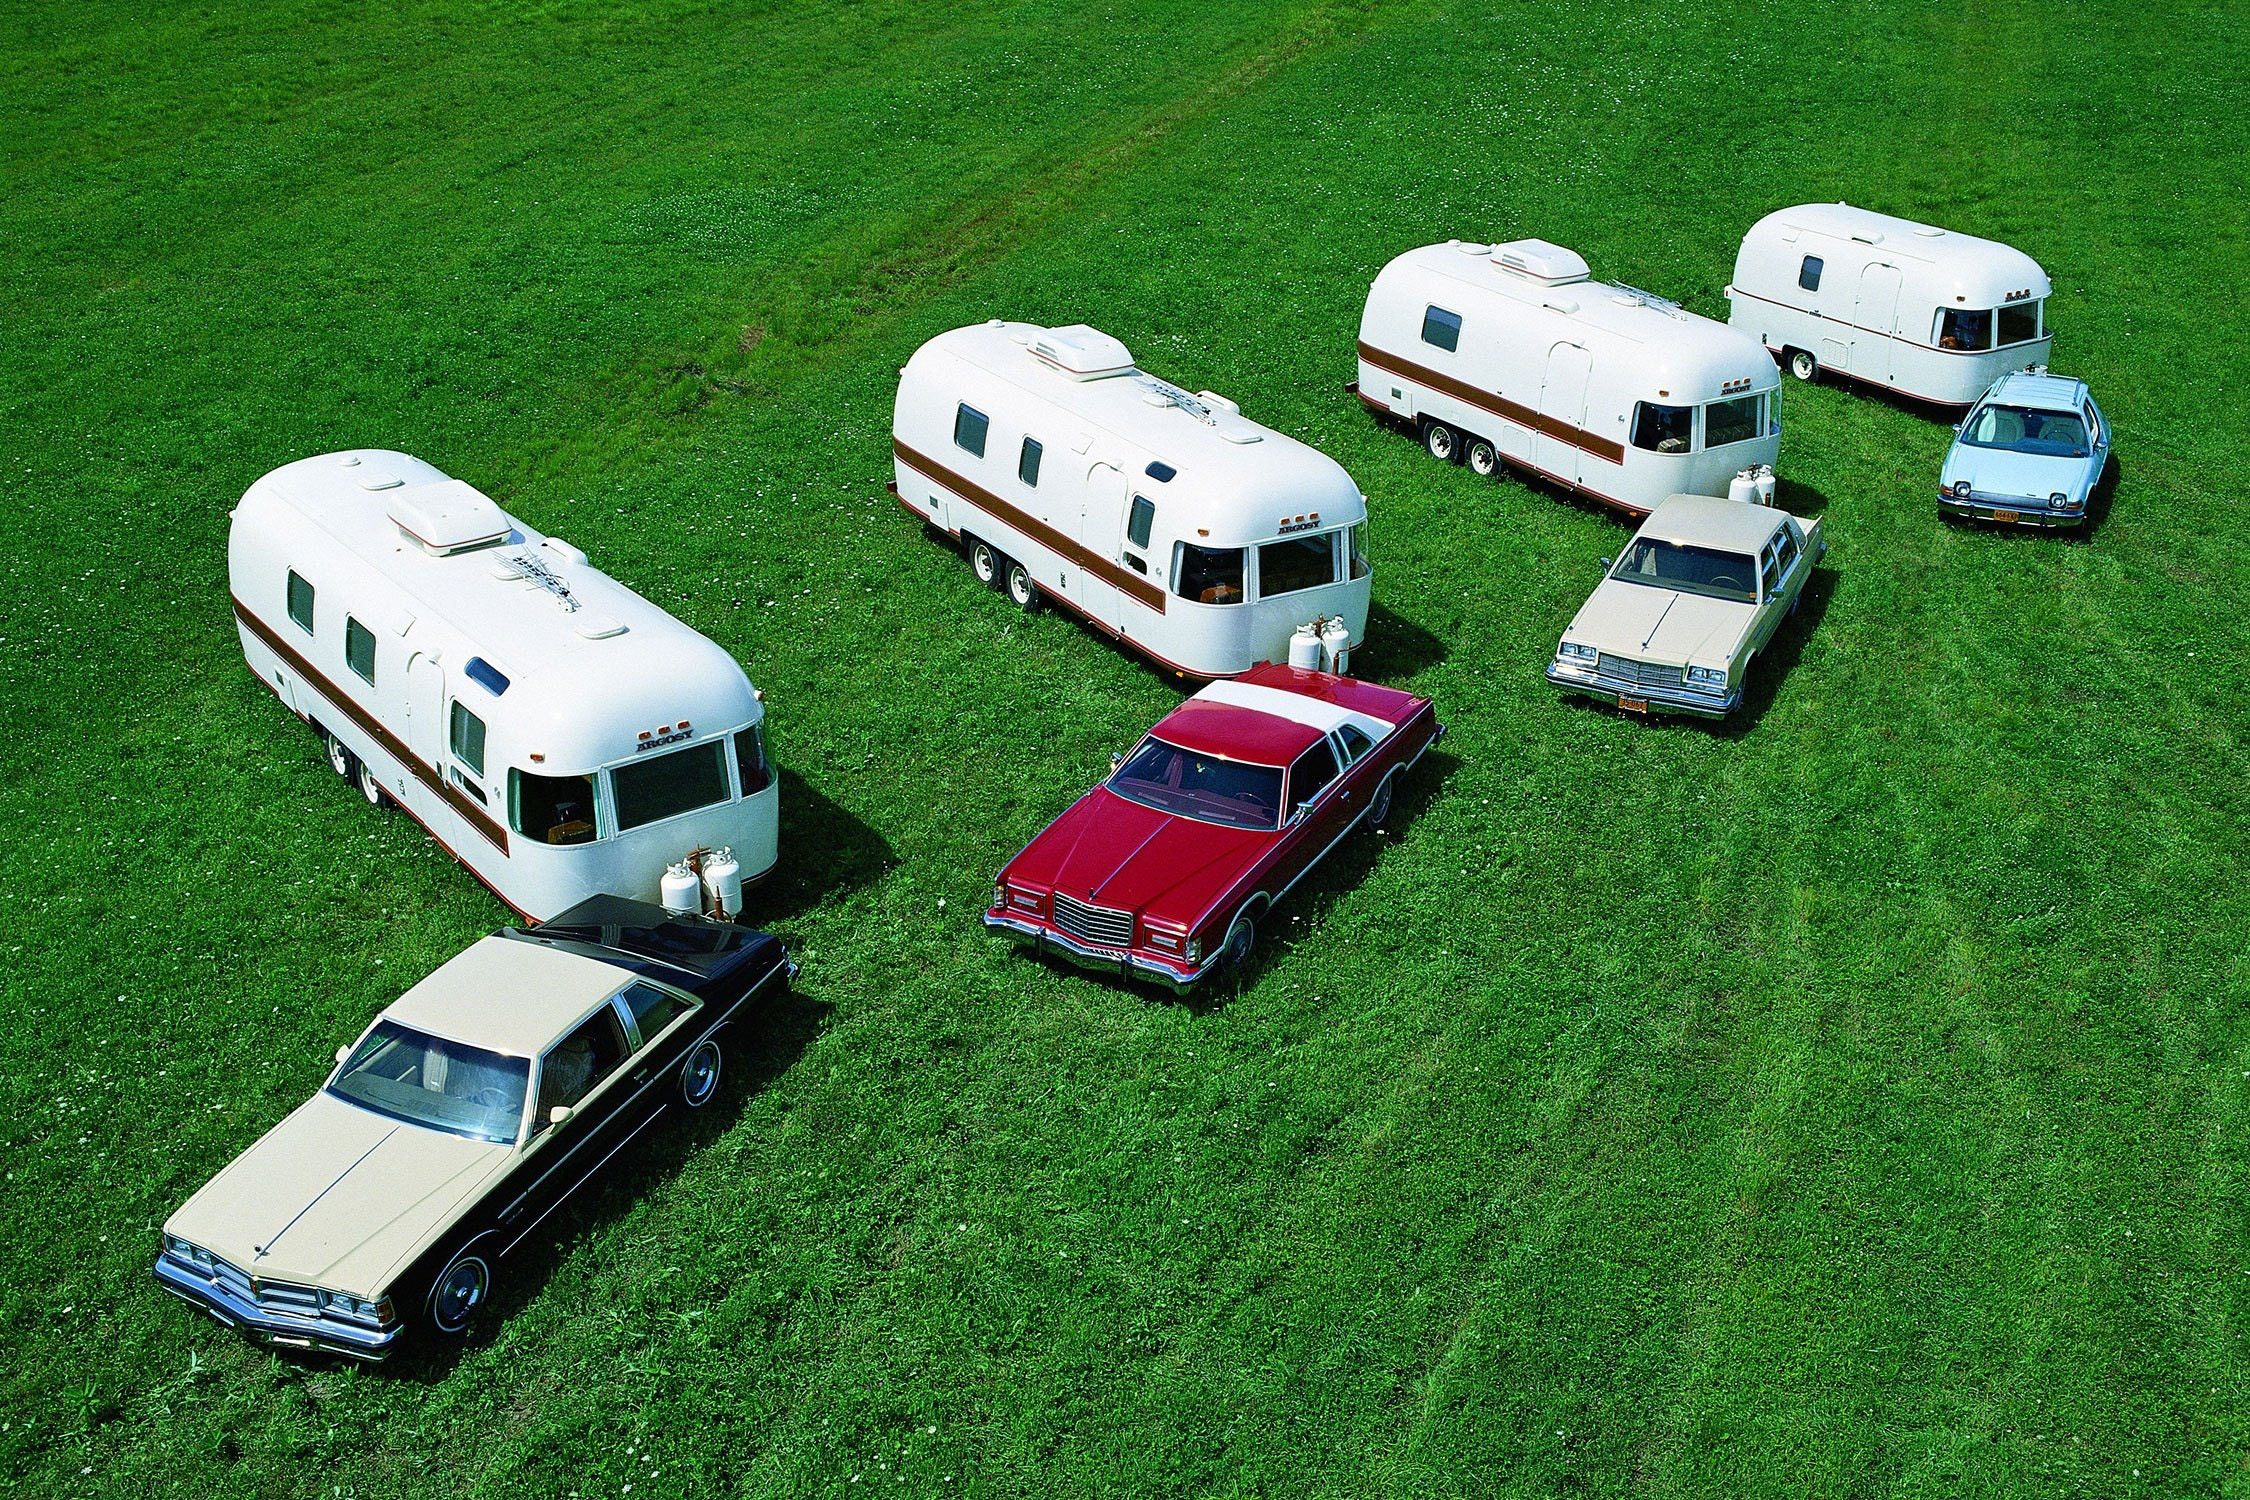 Argosy: A short history of the painted Airstream | Airstream